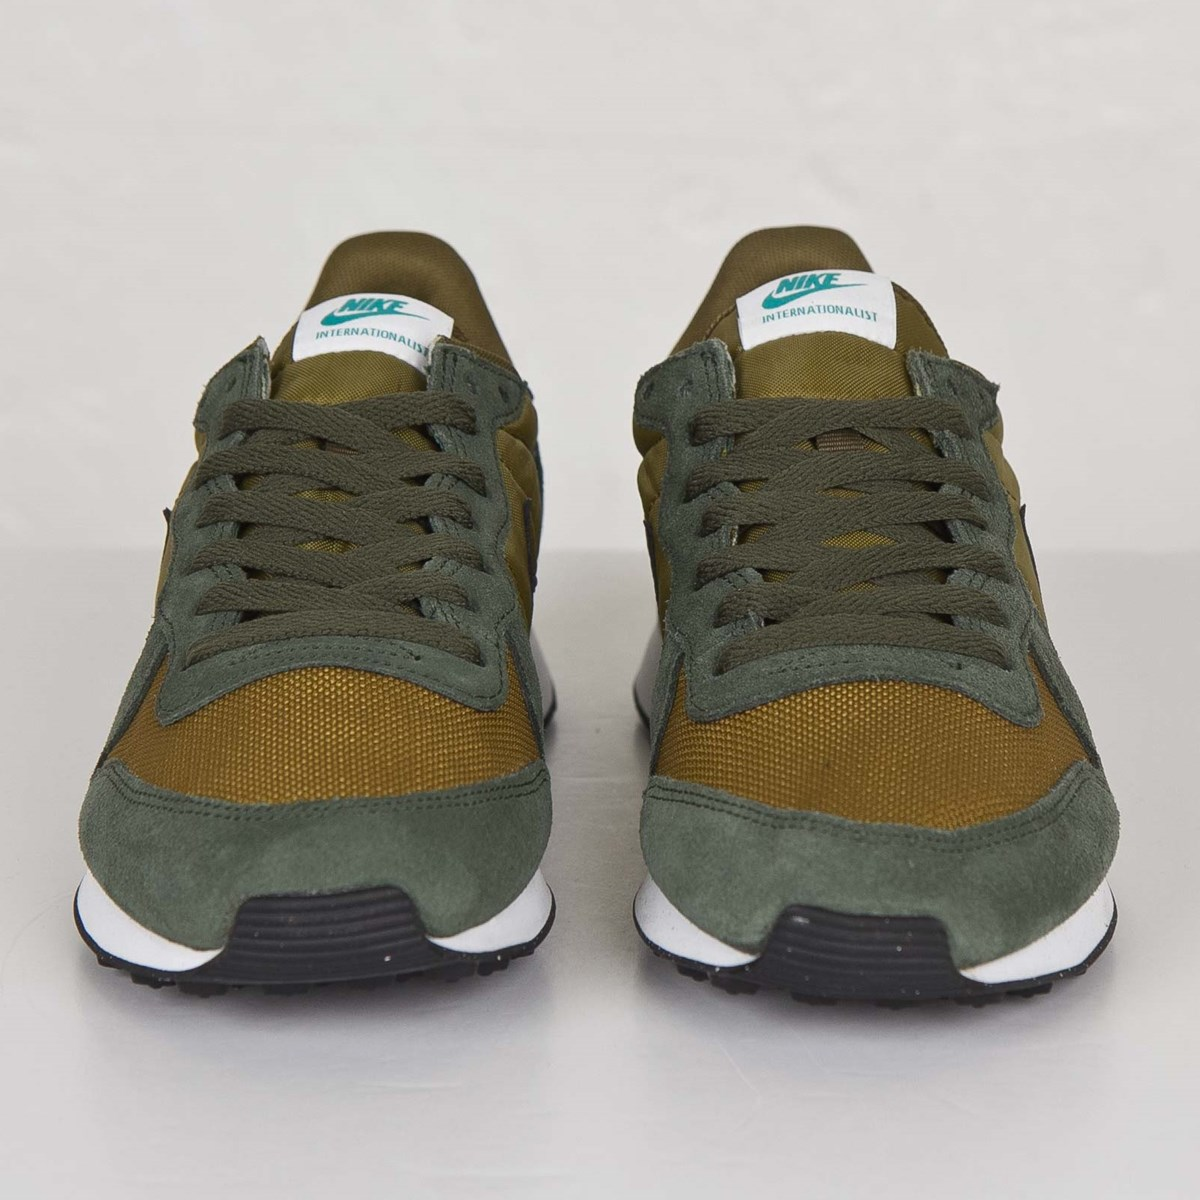 new style 00798 9ec70 Nike Internationalist - 631754-302 - Sneakersnstuff   sneakers   streetwear  online since 1999